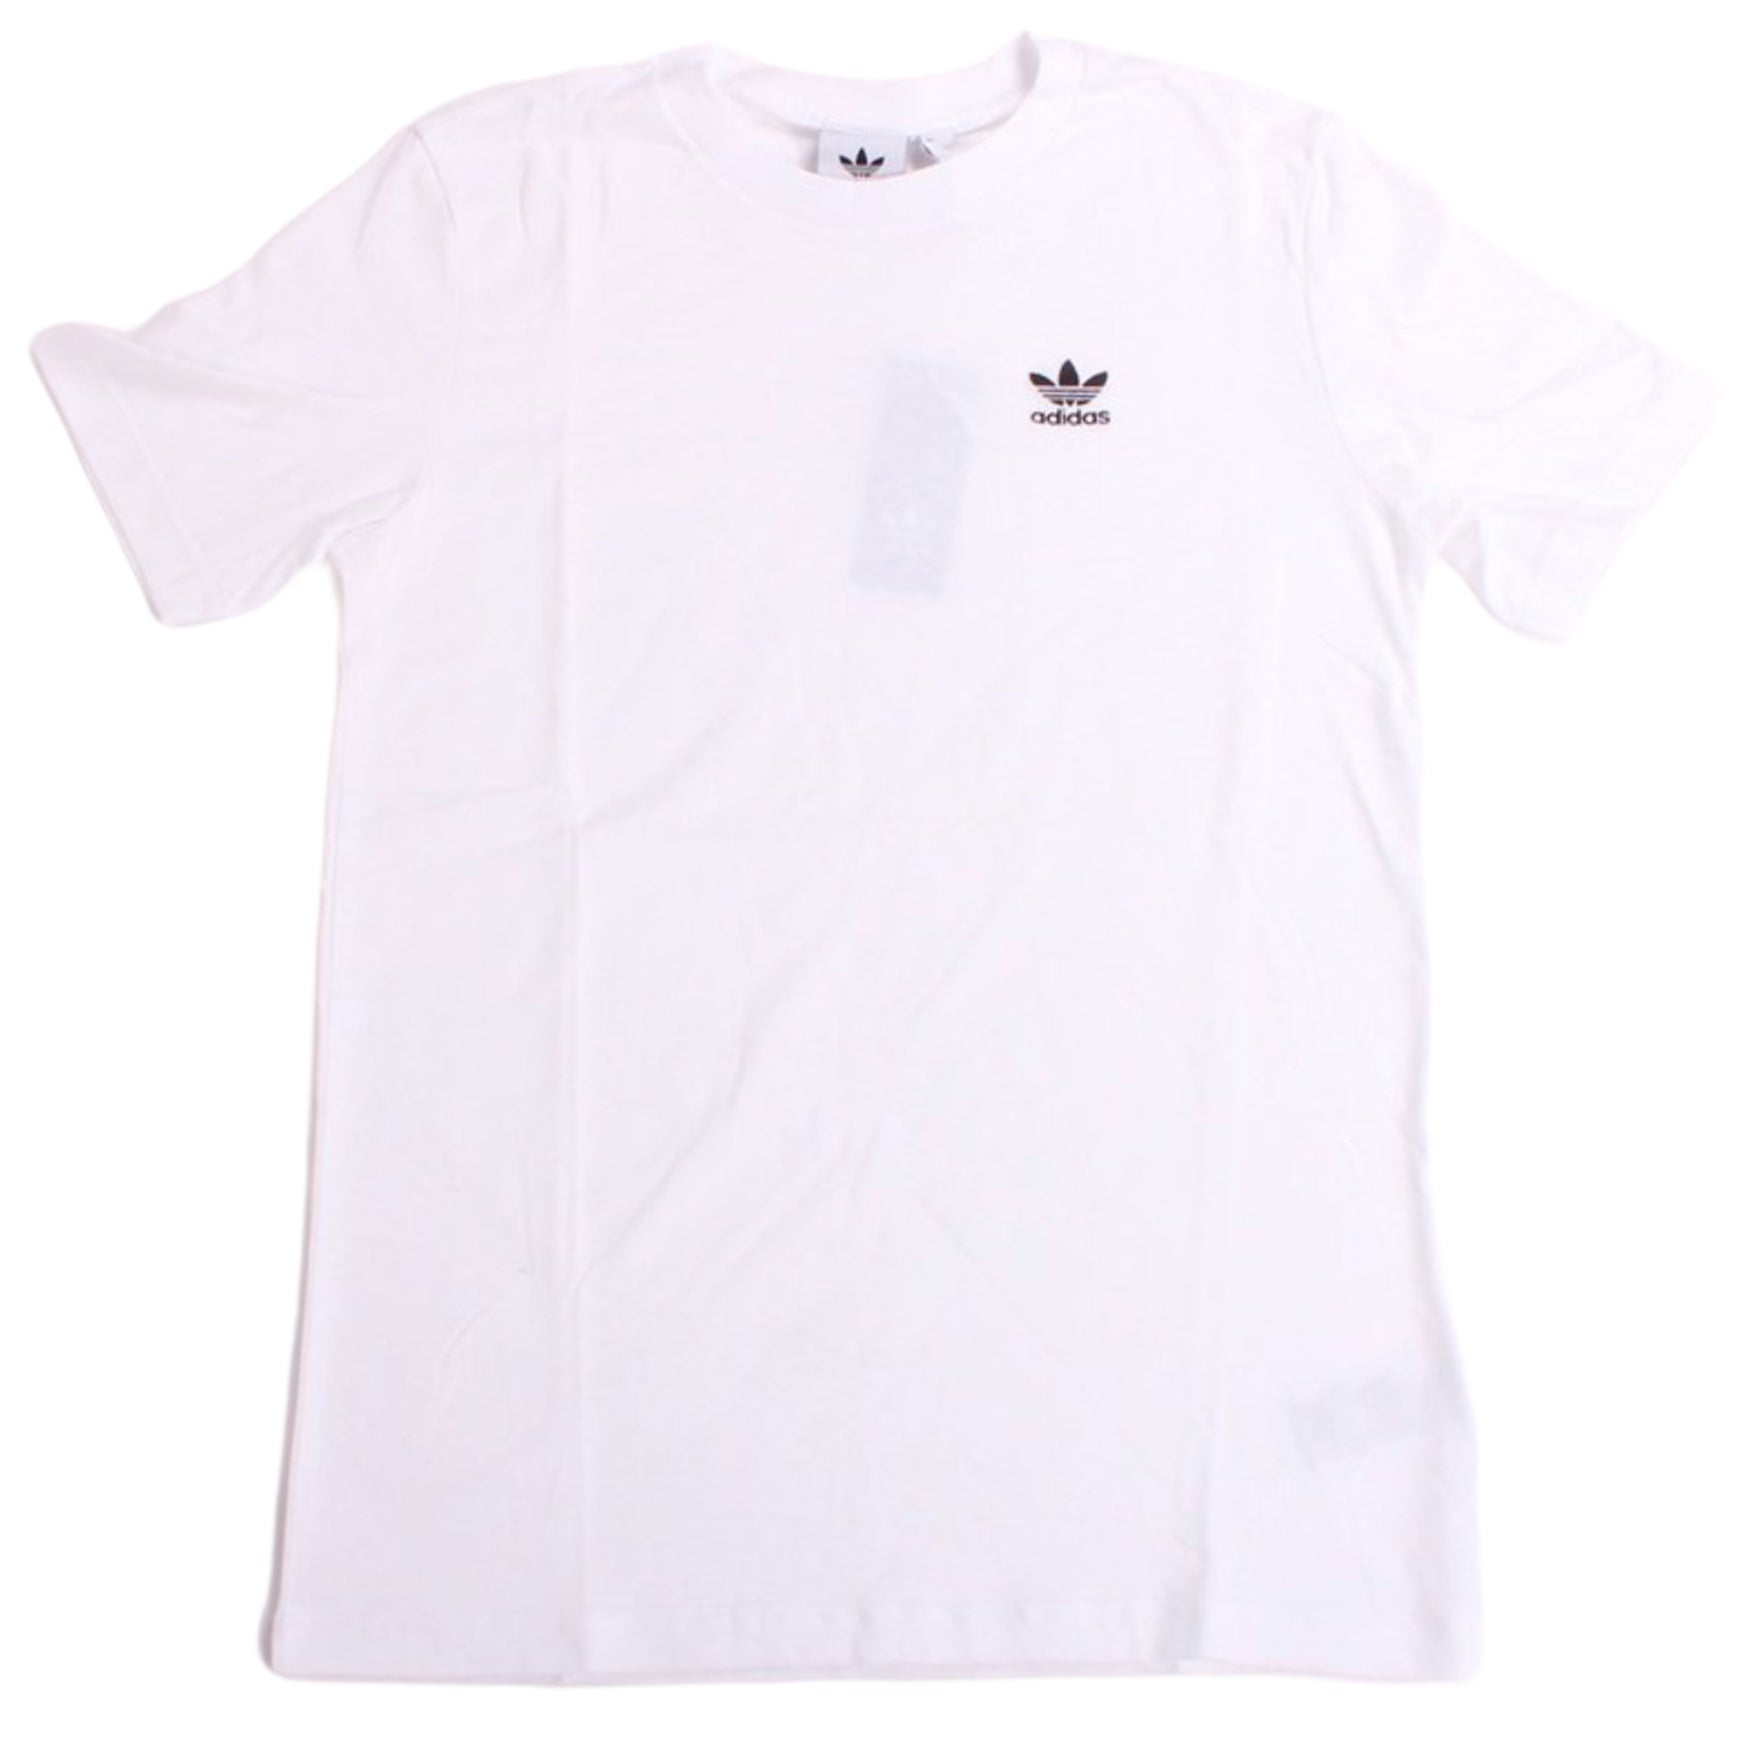 Adidas Tee Essential White